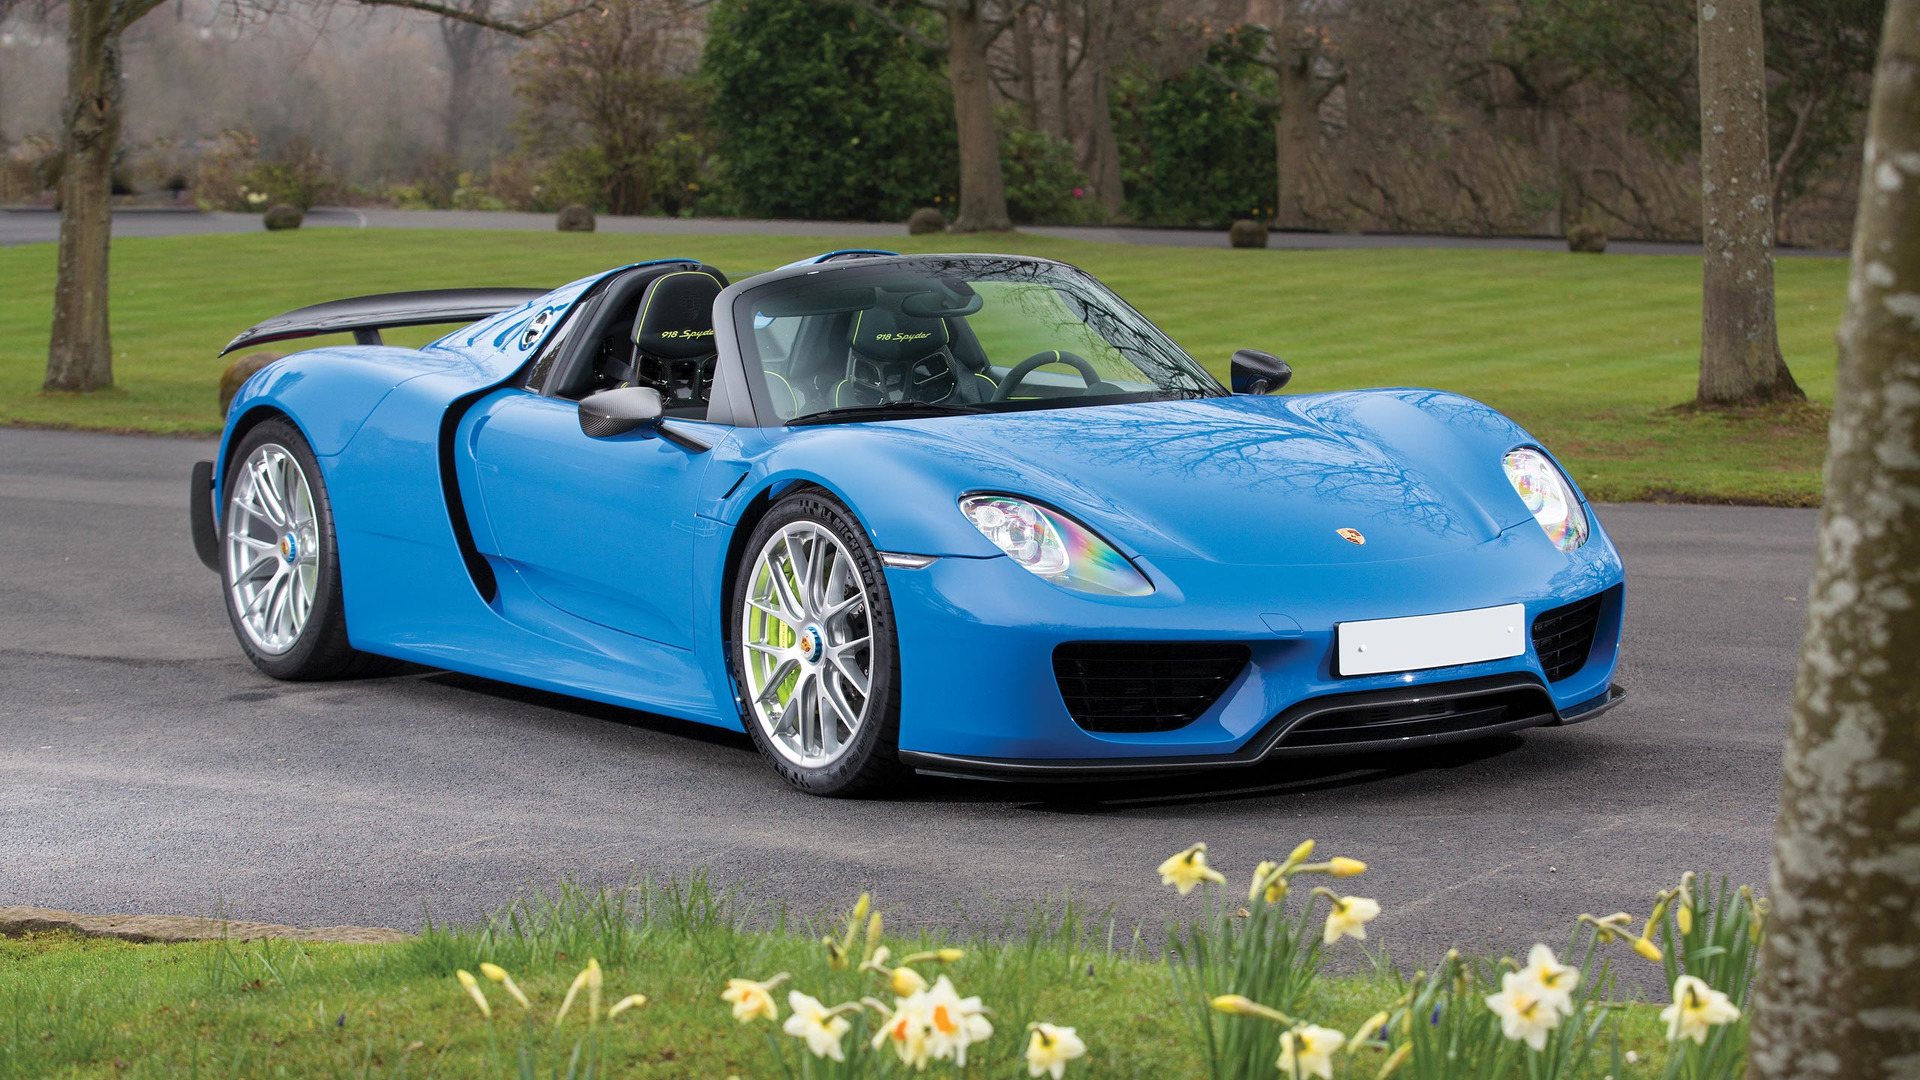 This Is The Only Arrow Blue Porsche 918 And Its For Auction